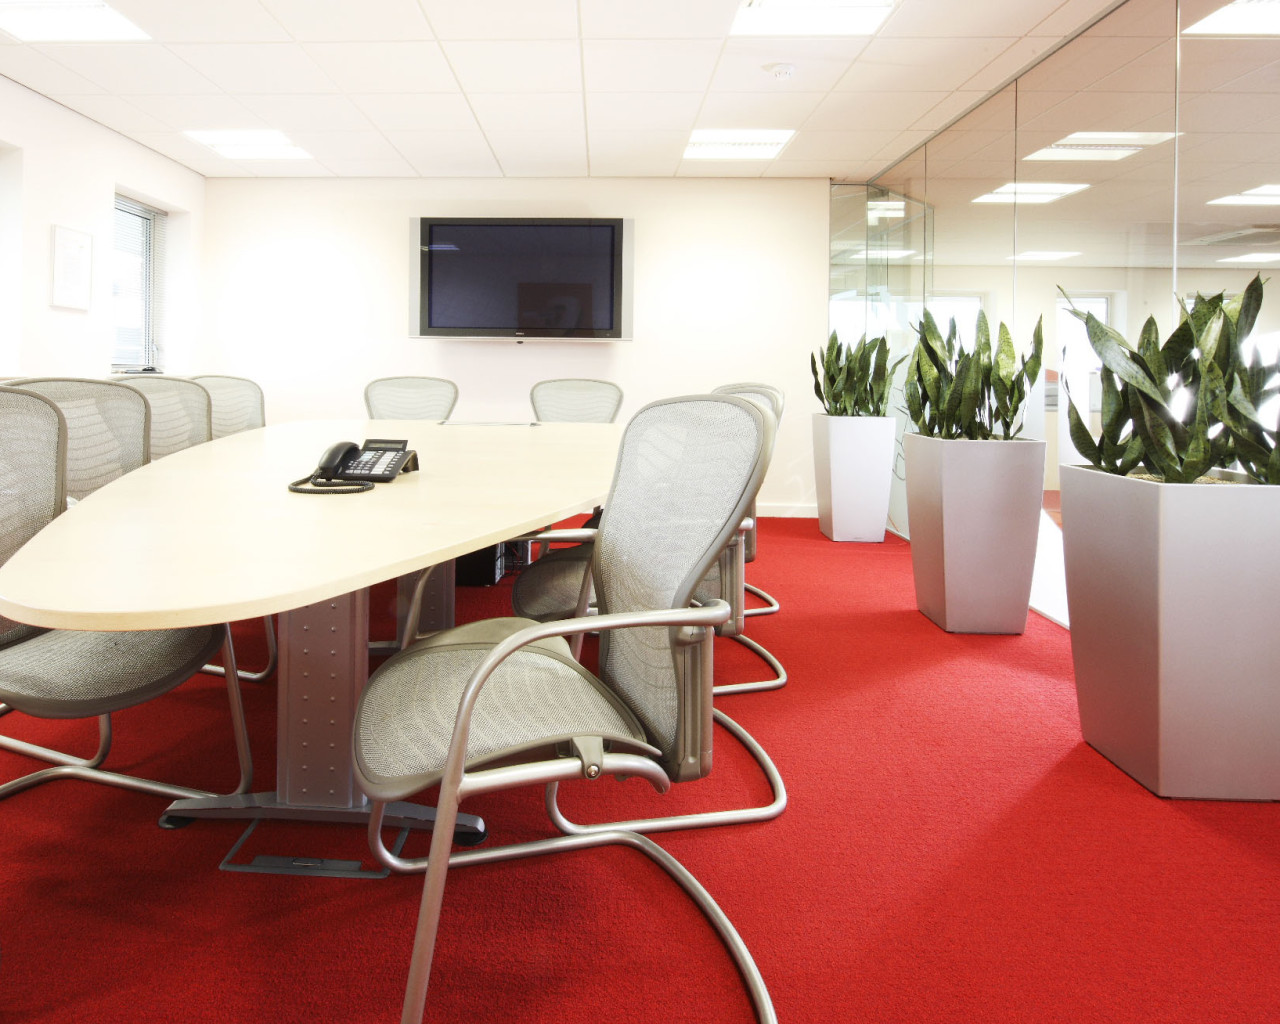 Corporate office interior design, Interior office design, Bolton, Manchester, Cheshire, Lancashire, Liverpool, Leeds, UK